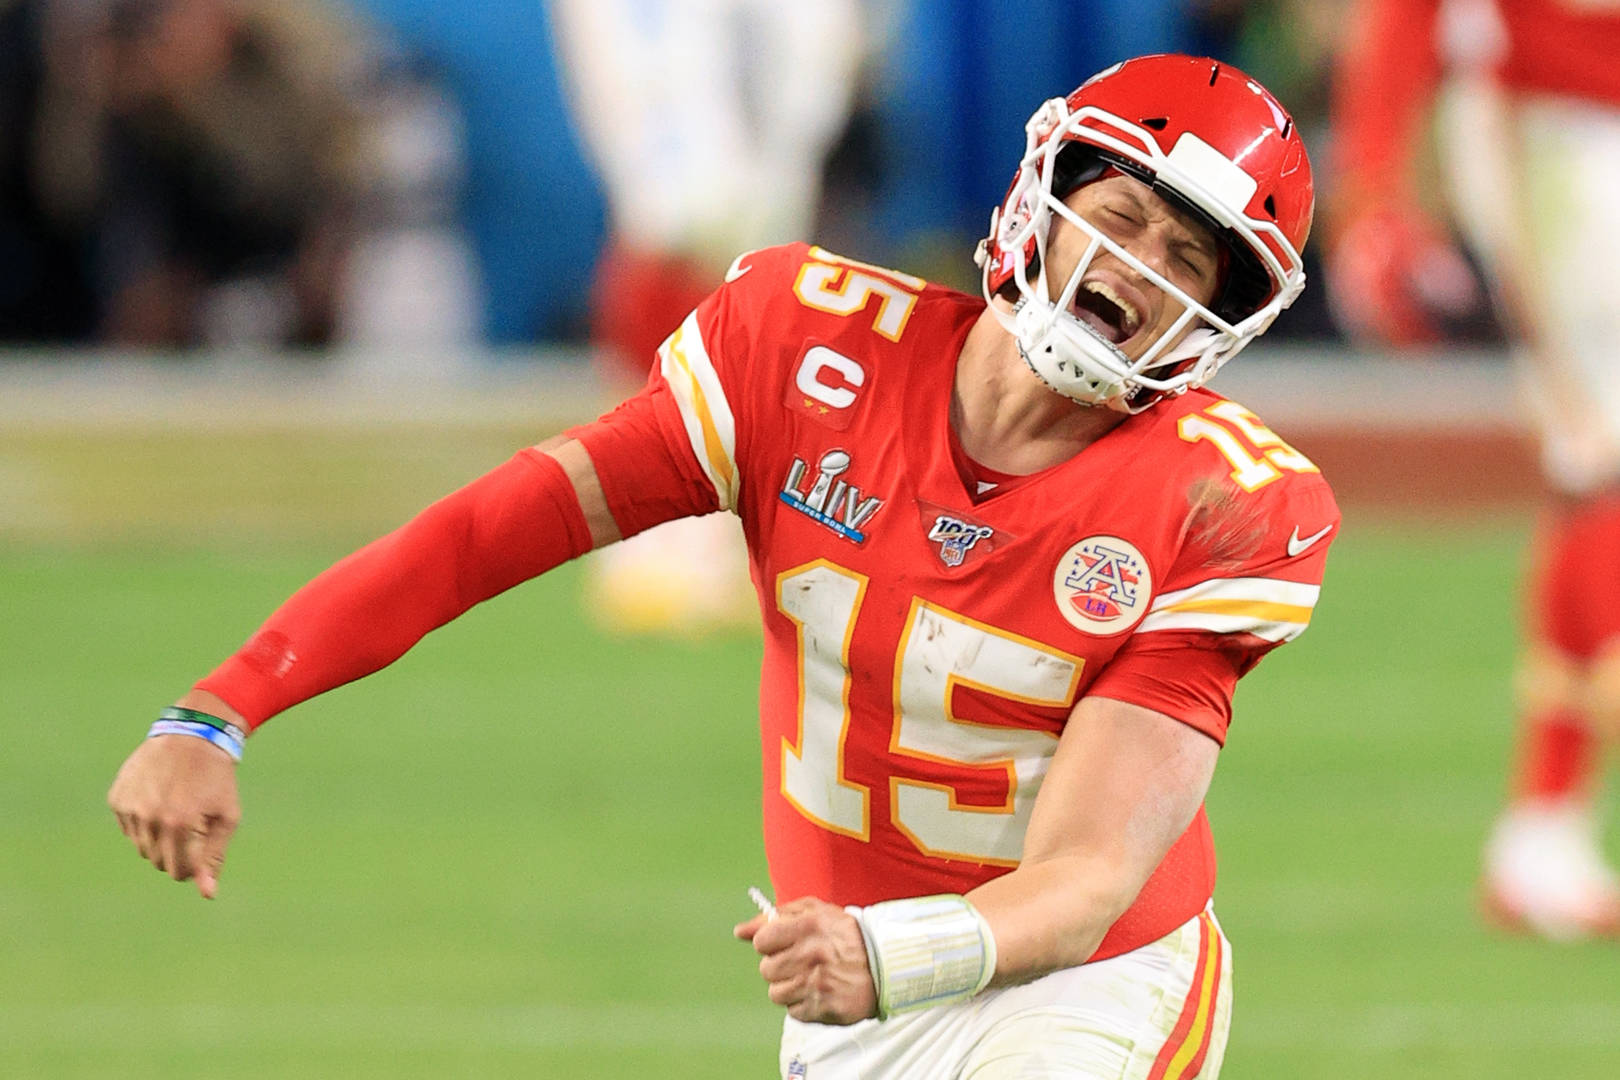 Patrick Mahomes & The Chiefs Can Become The NFL's Next Great Dynasty